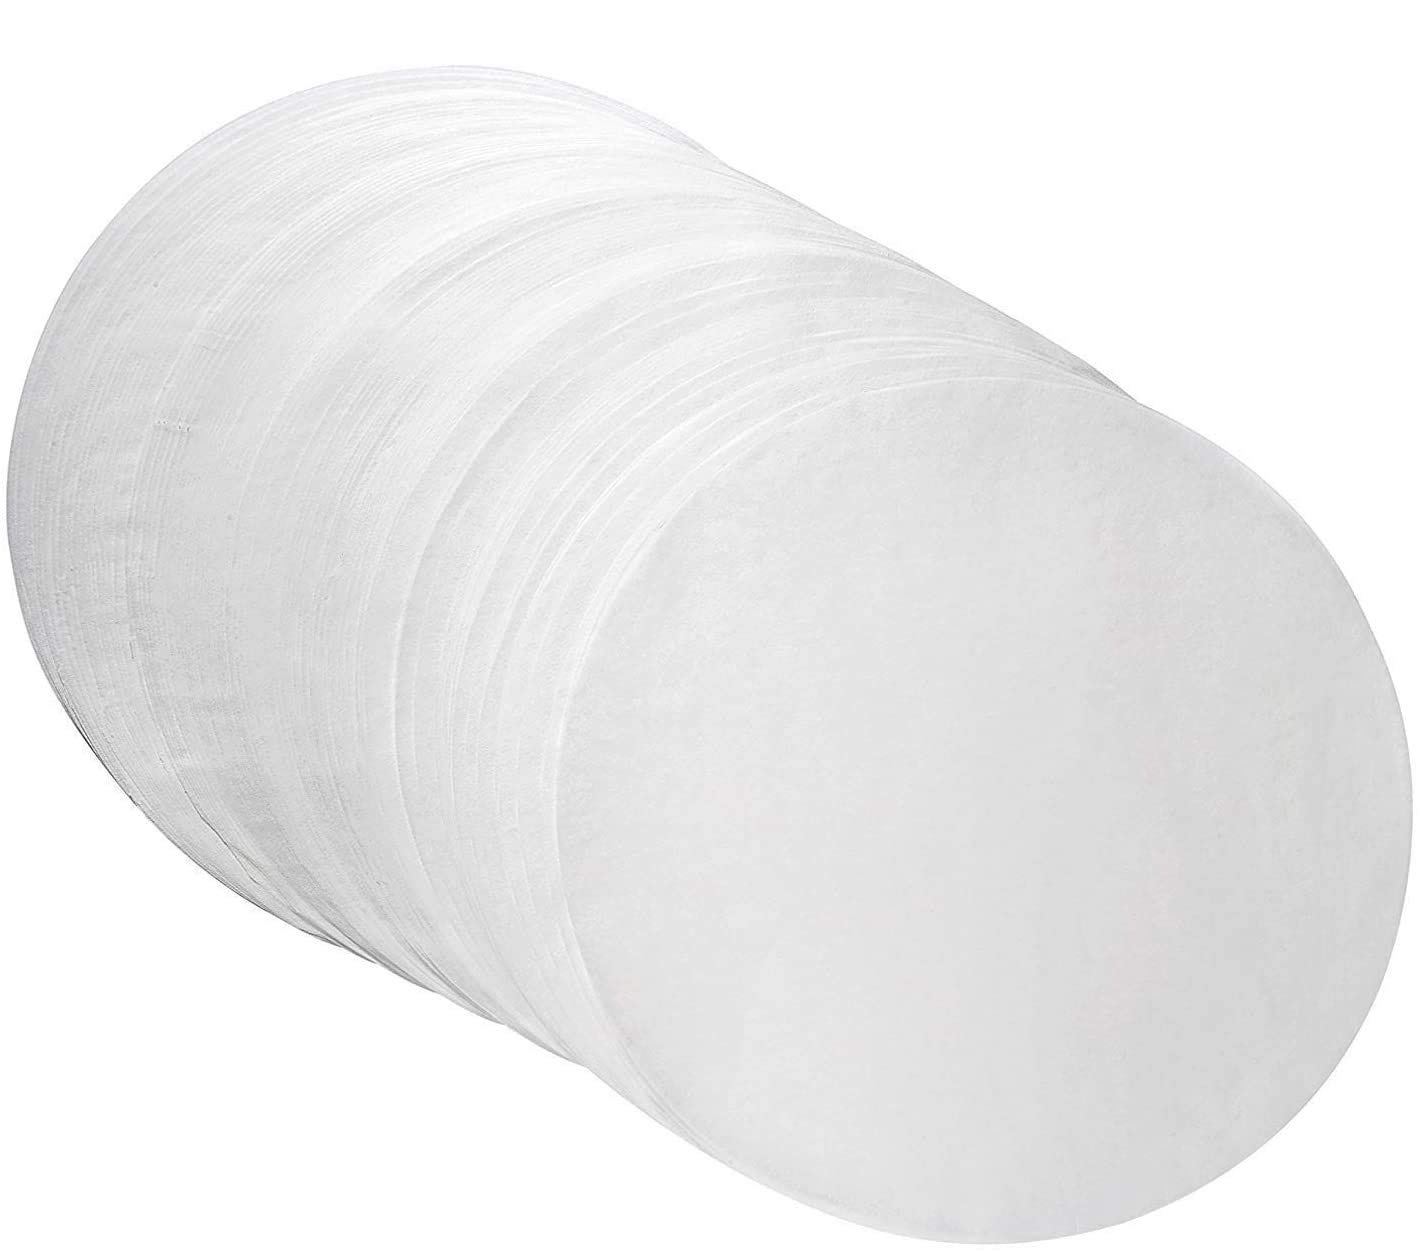 Parchment Paper Rounds 7 Inch Diameter(set of 200), Baking Paper Liners for Baking Cakes, Cooking, Dutch Oven, Air Fryer, Cheesecakes, Tortilla Press